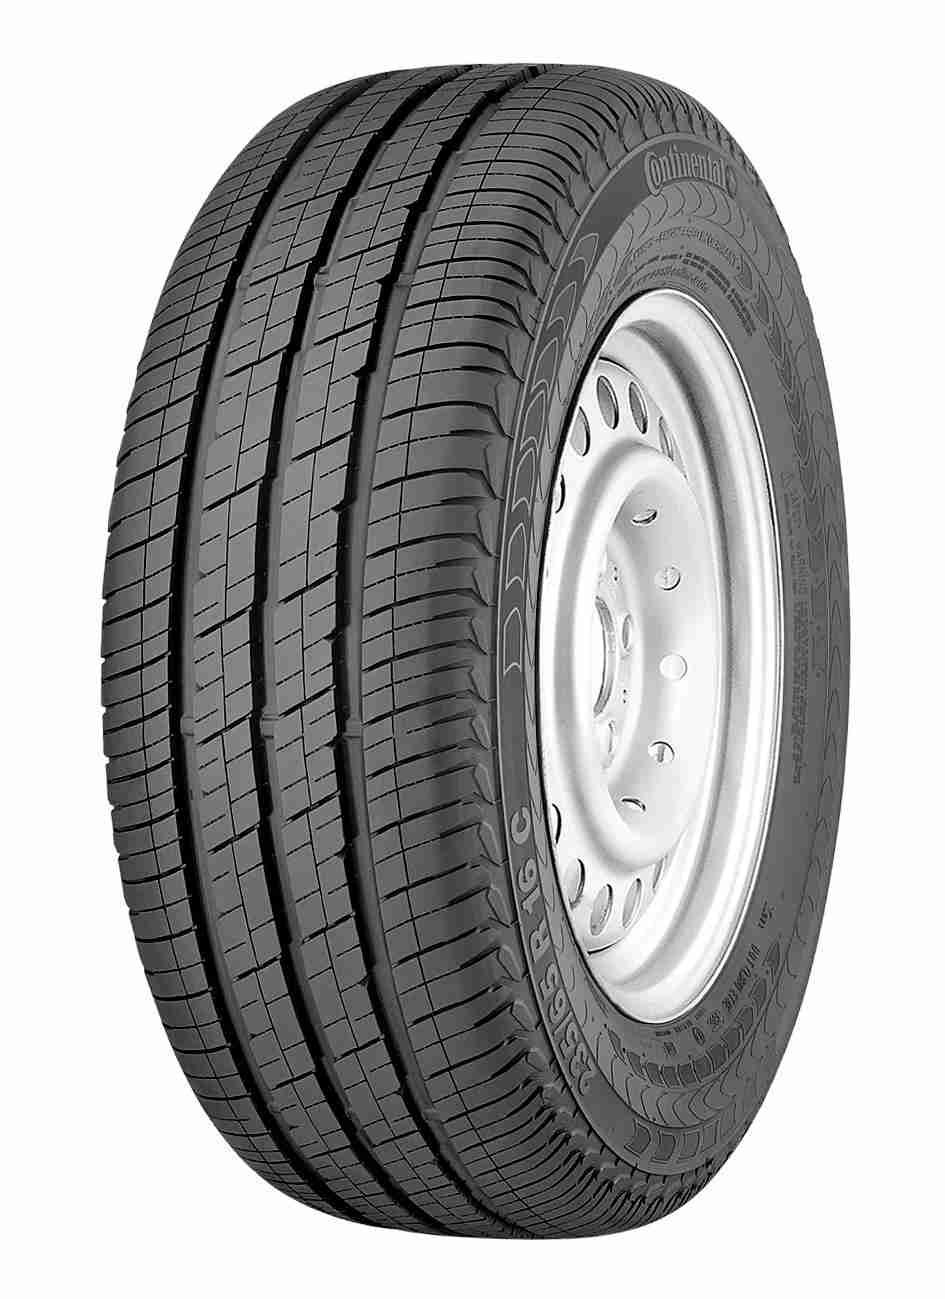 Neumático CONTINENTAL VANCOCONTACT2 205/65R16 107 T